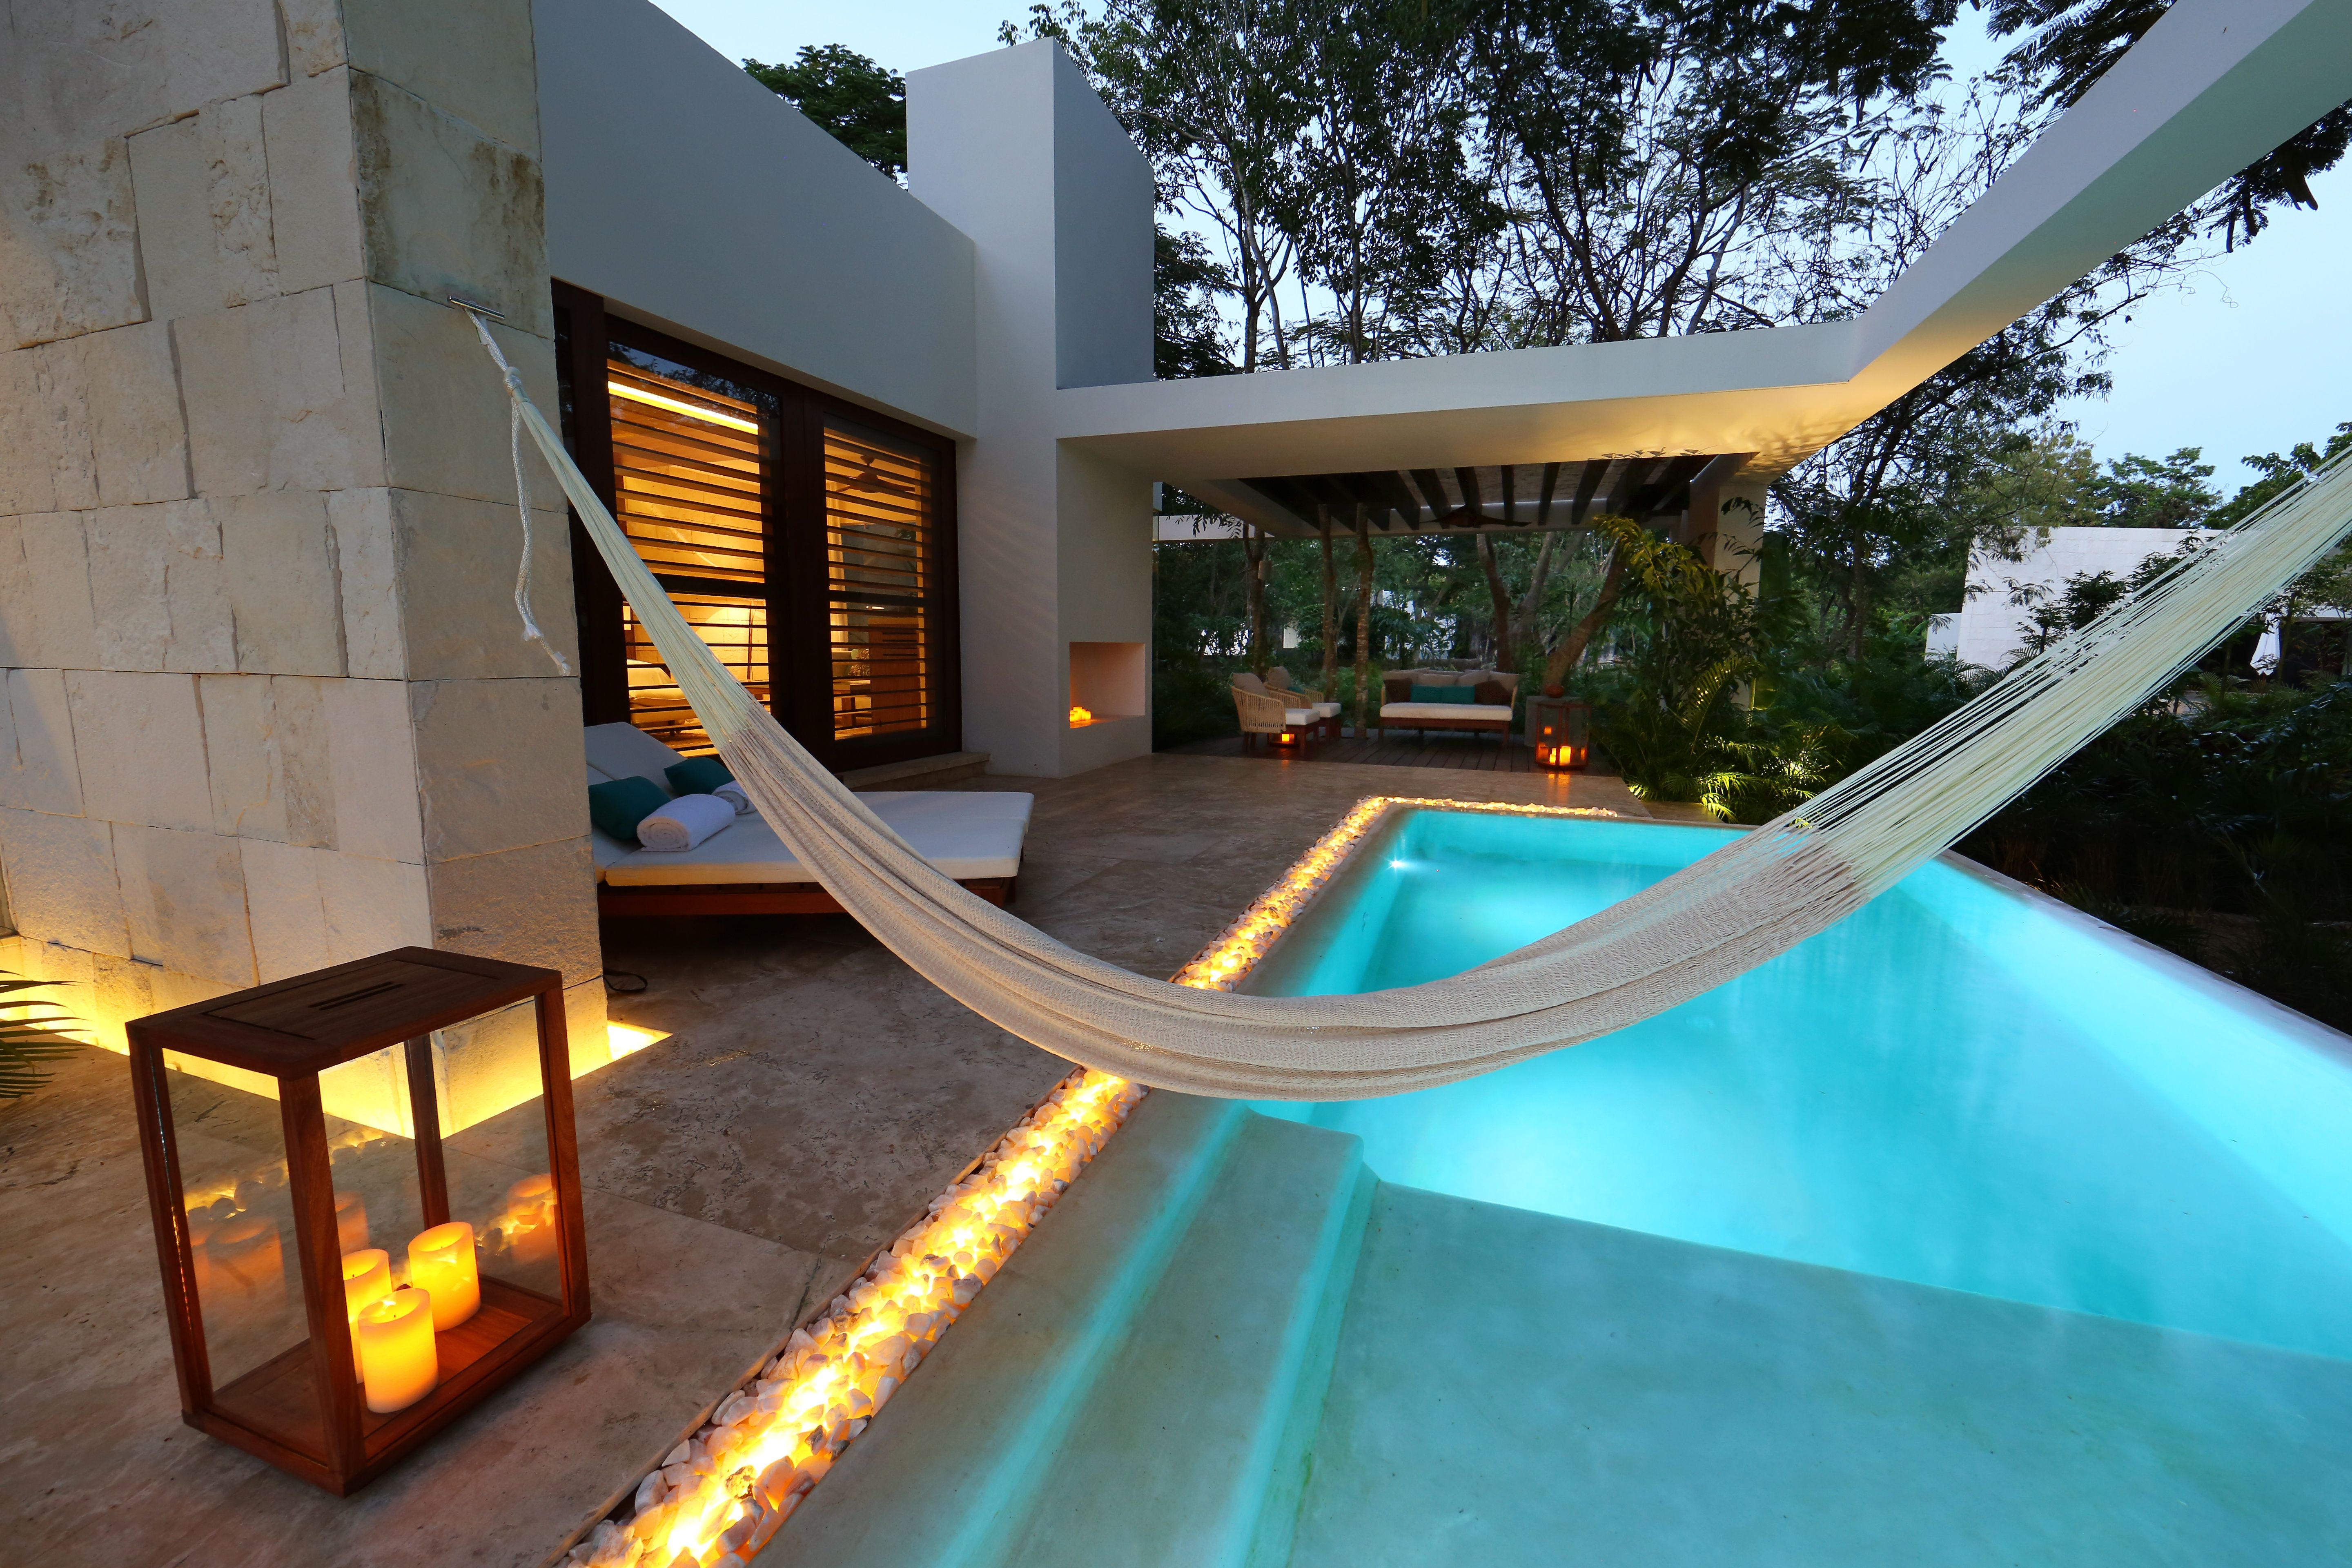 Chablé Resort Spa Luxury Hotel In Yucatan Peninsula Mexico Slh Small Hotels